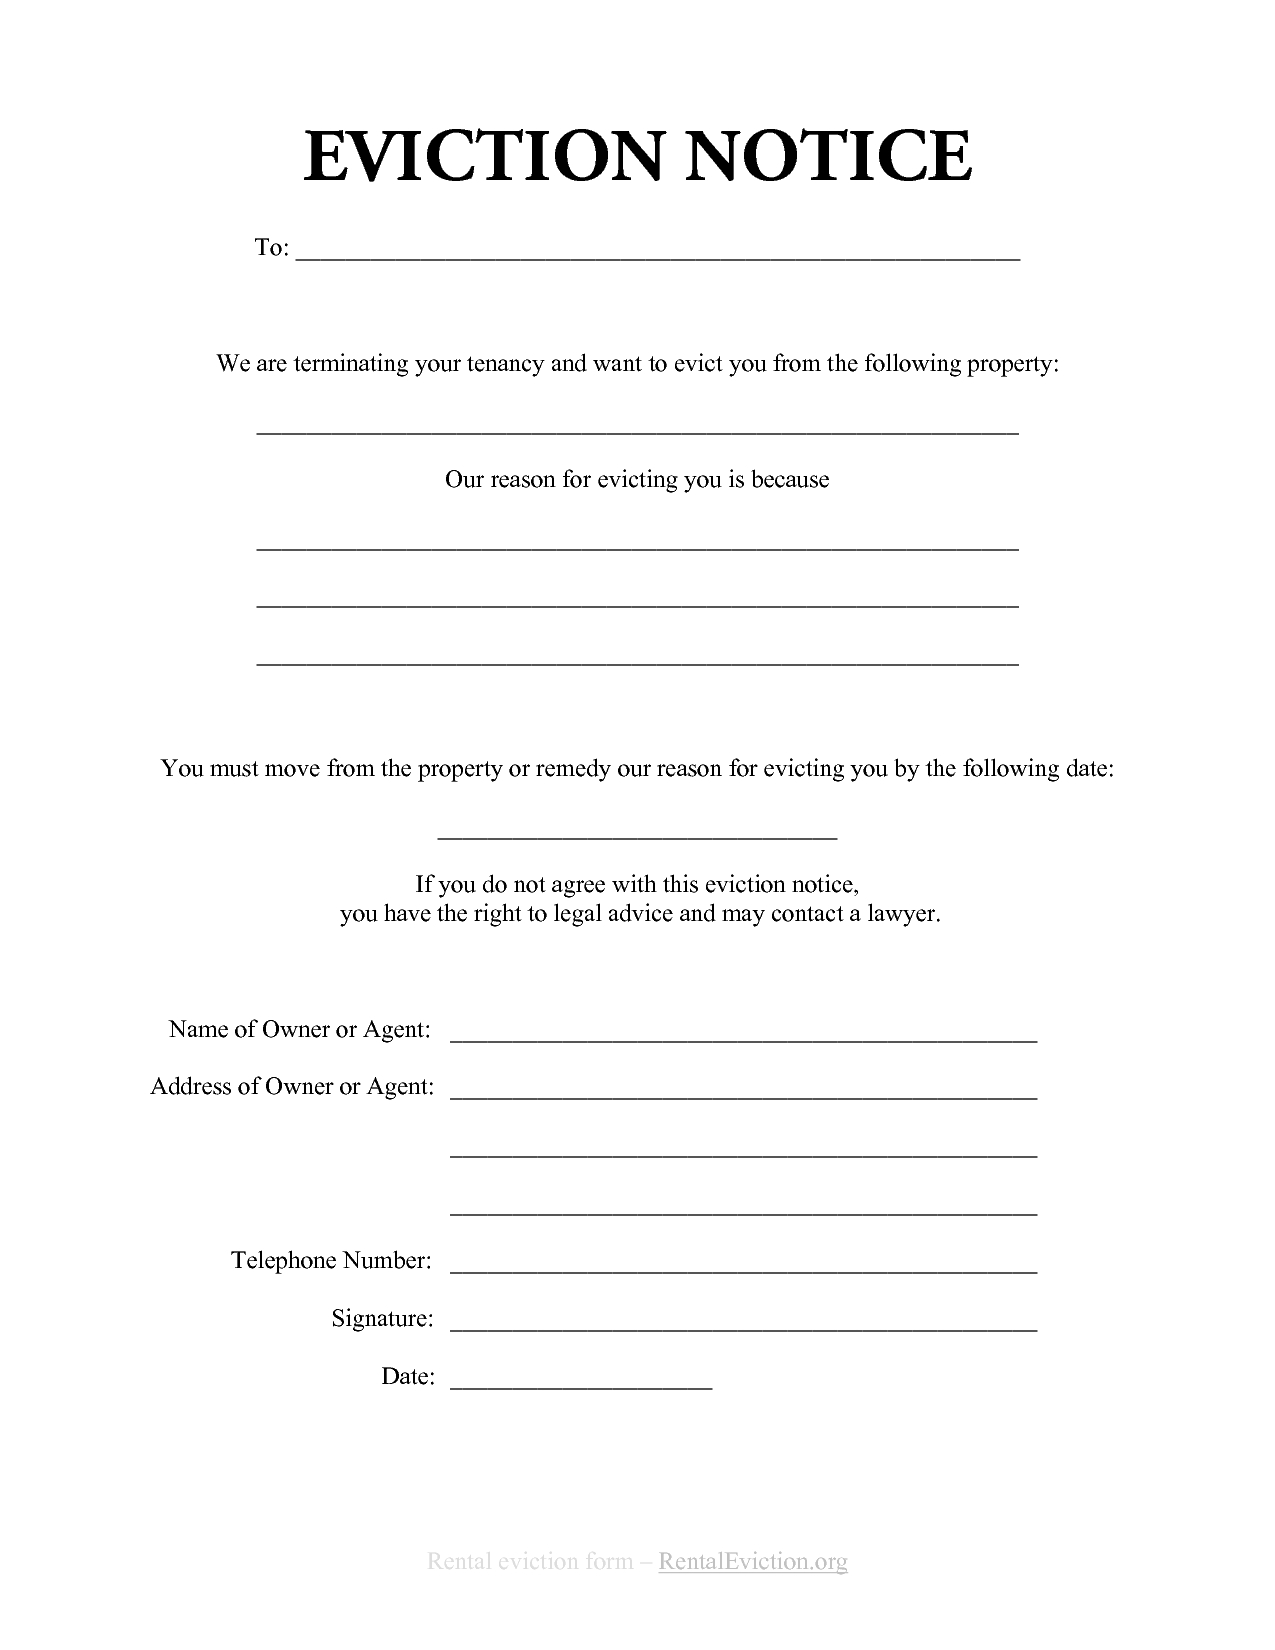 Free Print Out Eviction Notices | Free Rental Eviction Notice | G - Free Printable Eviction Notice